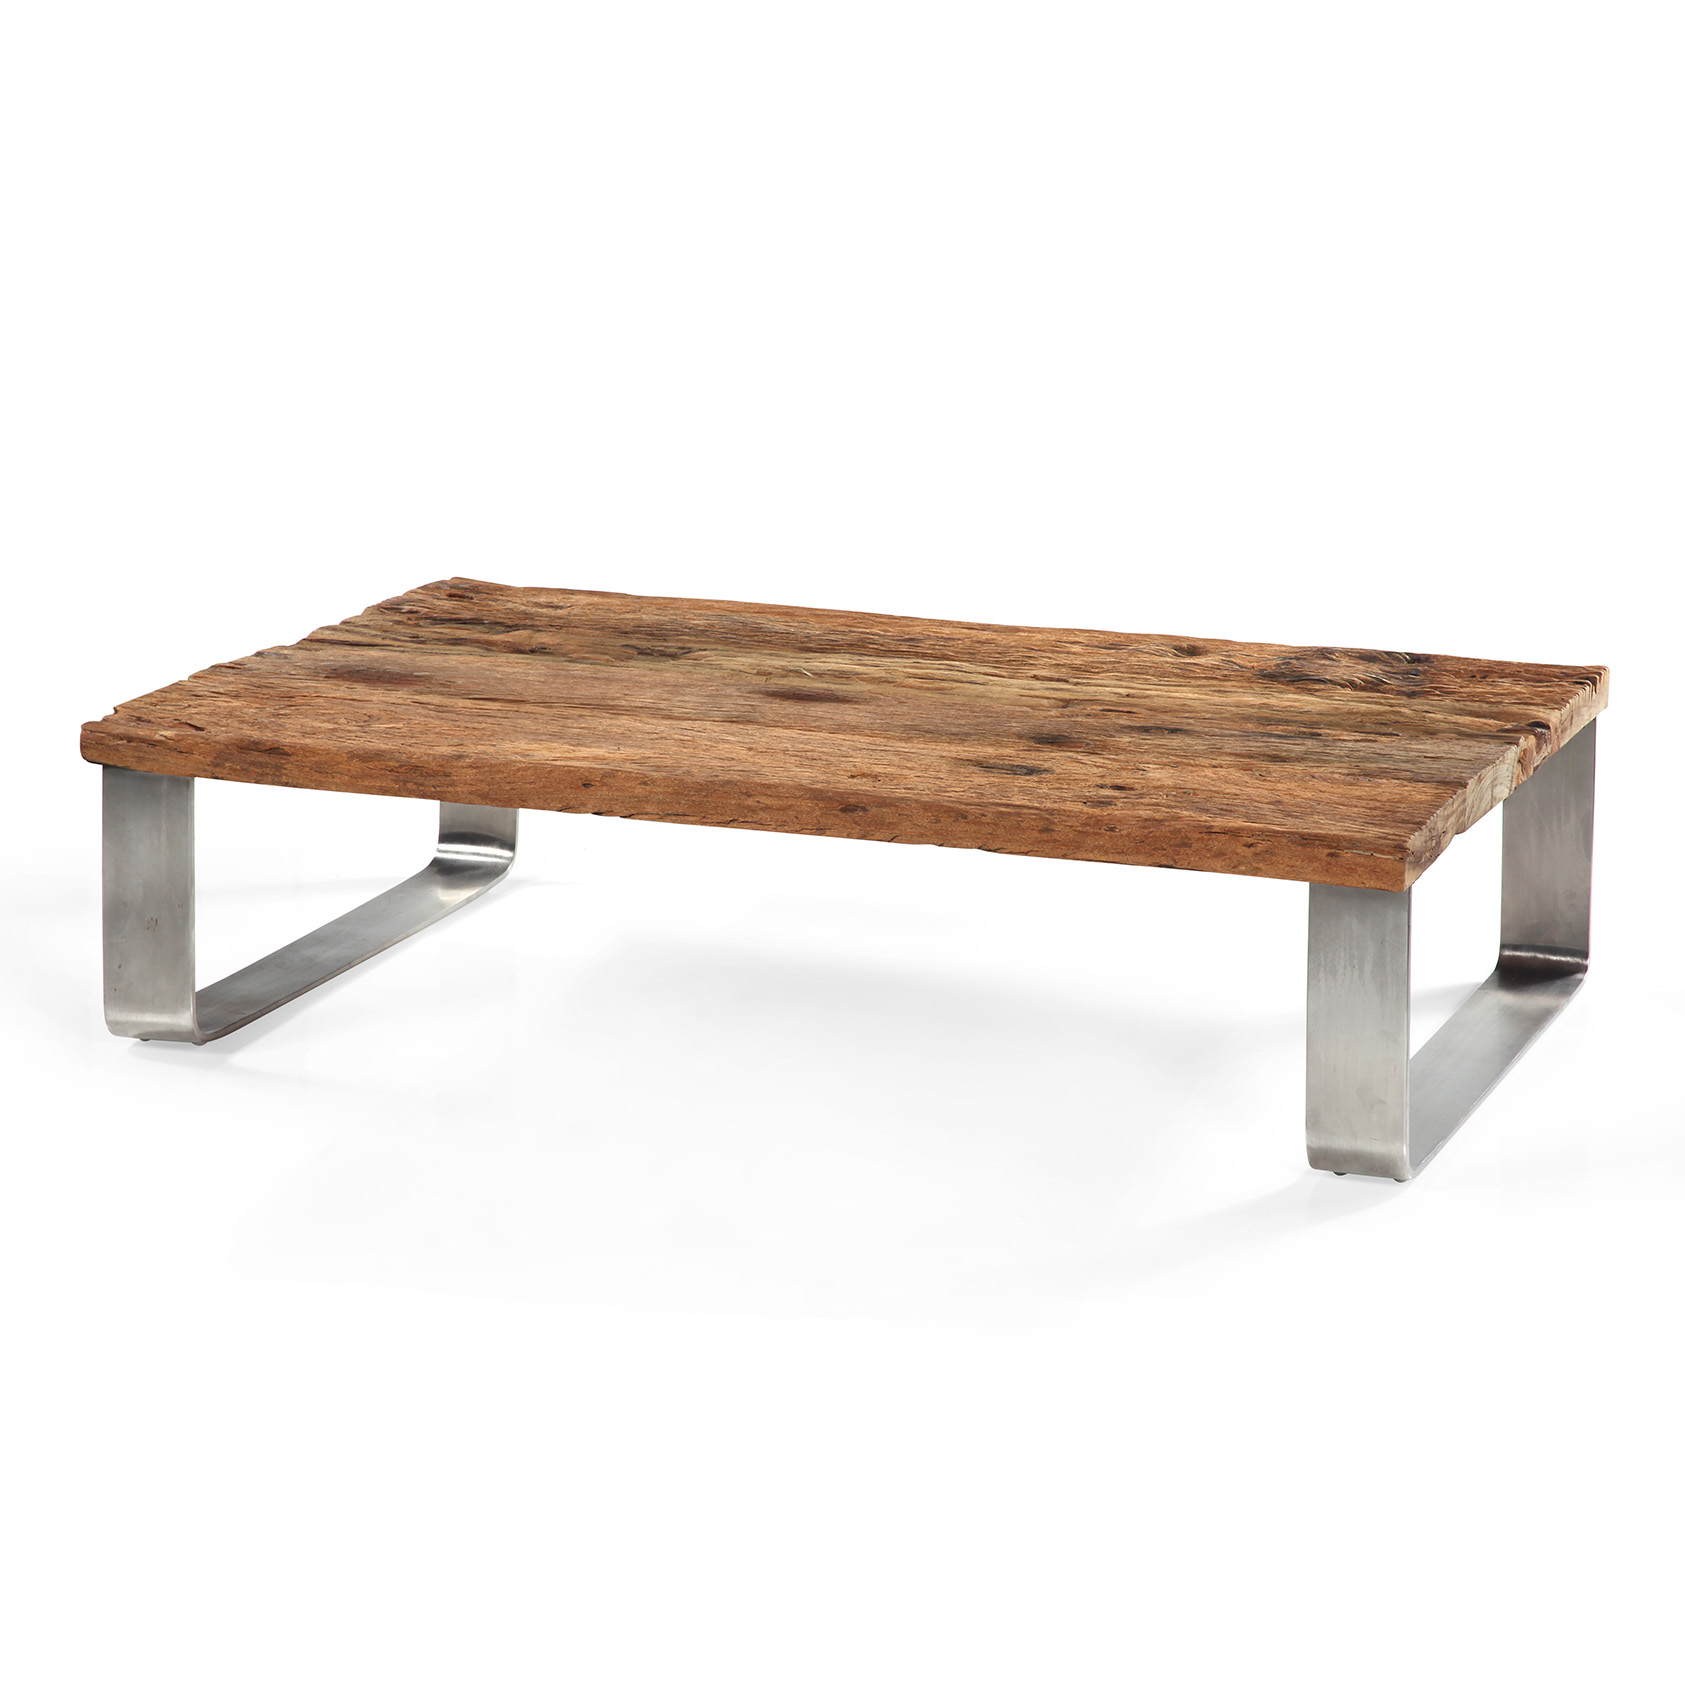 Table basse teck - Grande table de salon en bois ...